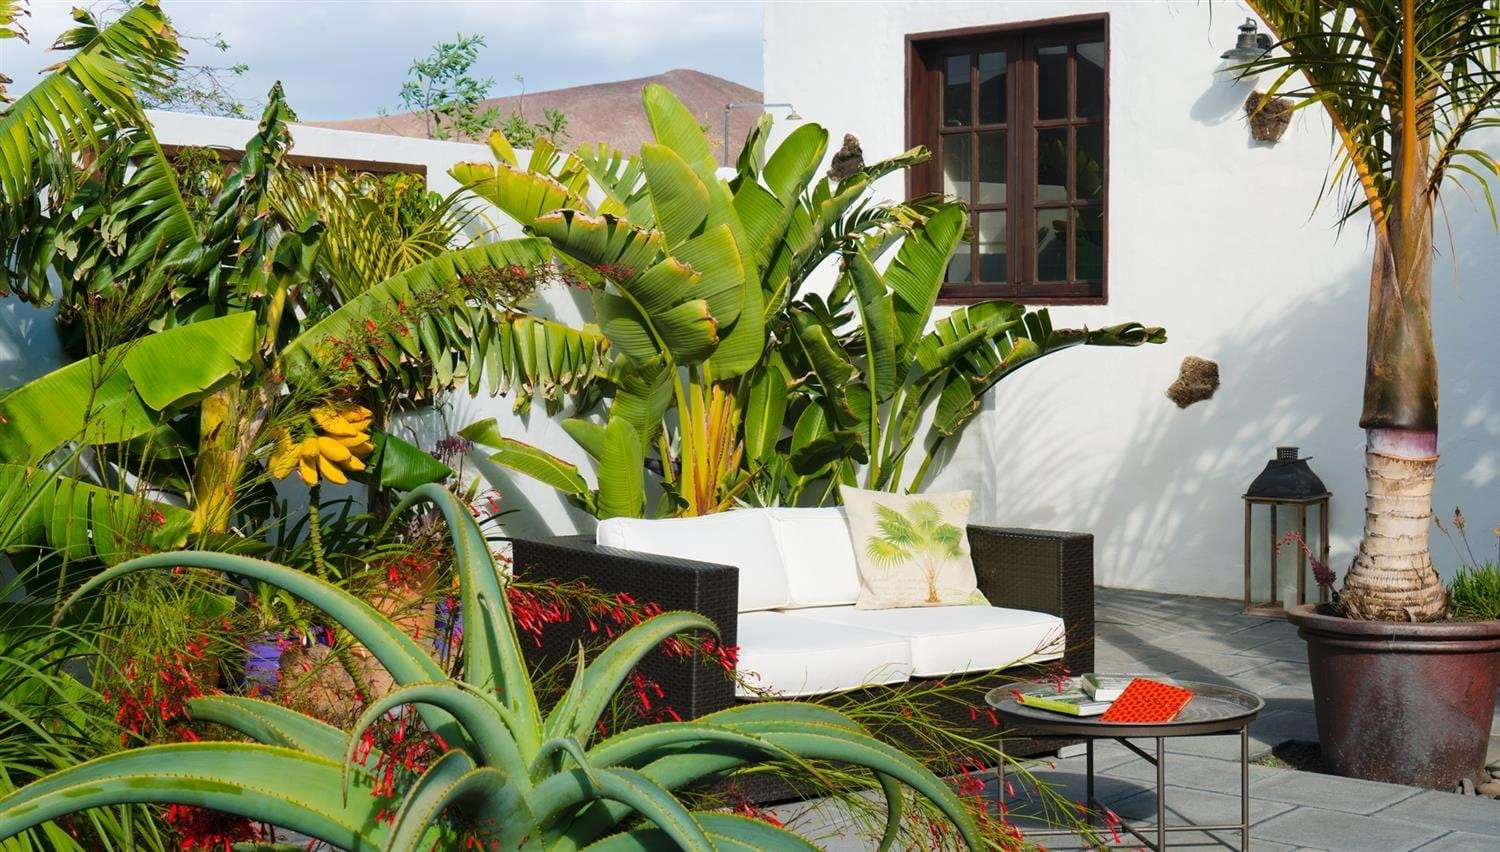 A comfy outdoor sofa surrounded by tropical plants at Finca Botanico in Lanzarote